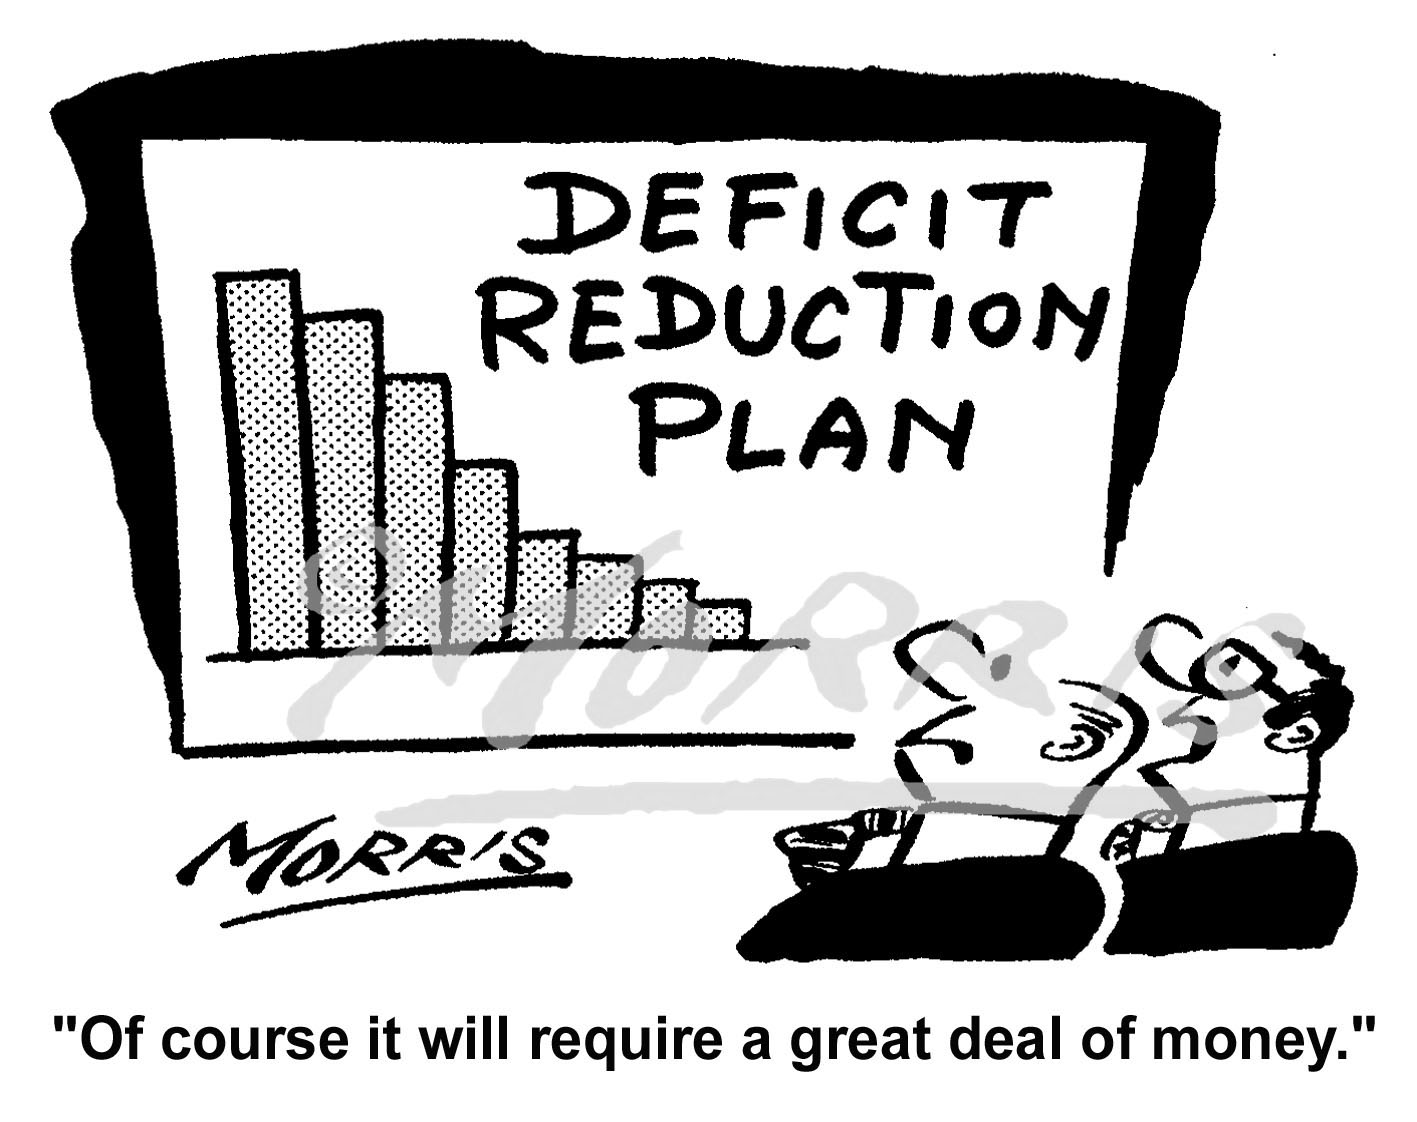 Company deficit reduction plan cartoon – Ref: 5022bw